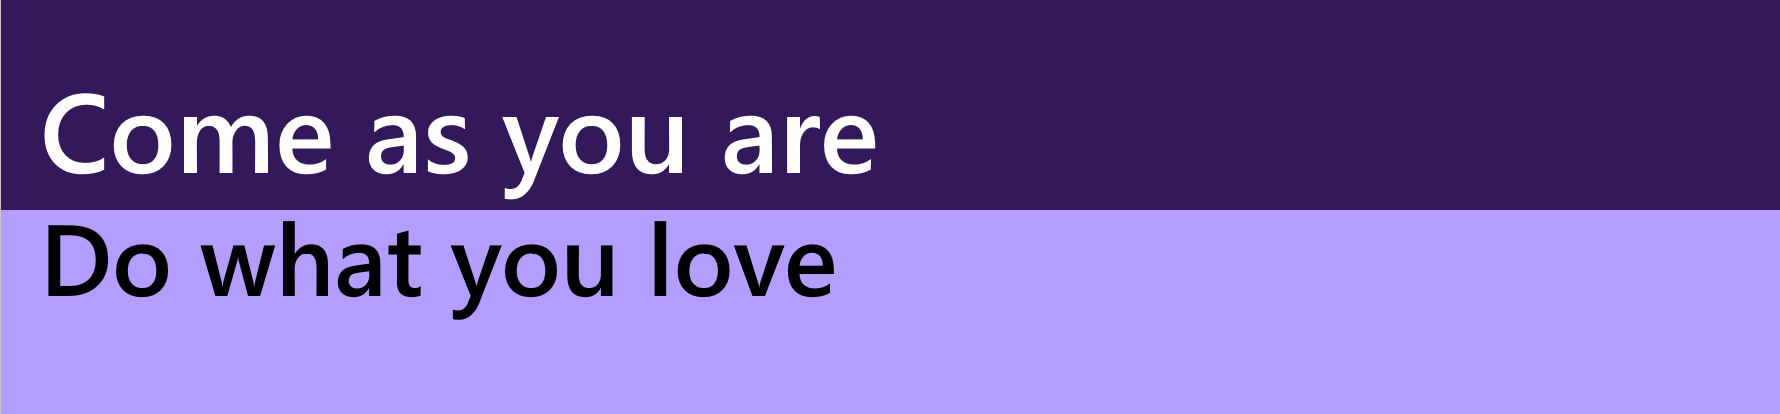 "Purple rectangle with the following text overlayed: ""Come as you are. Do what you love."""